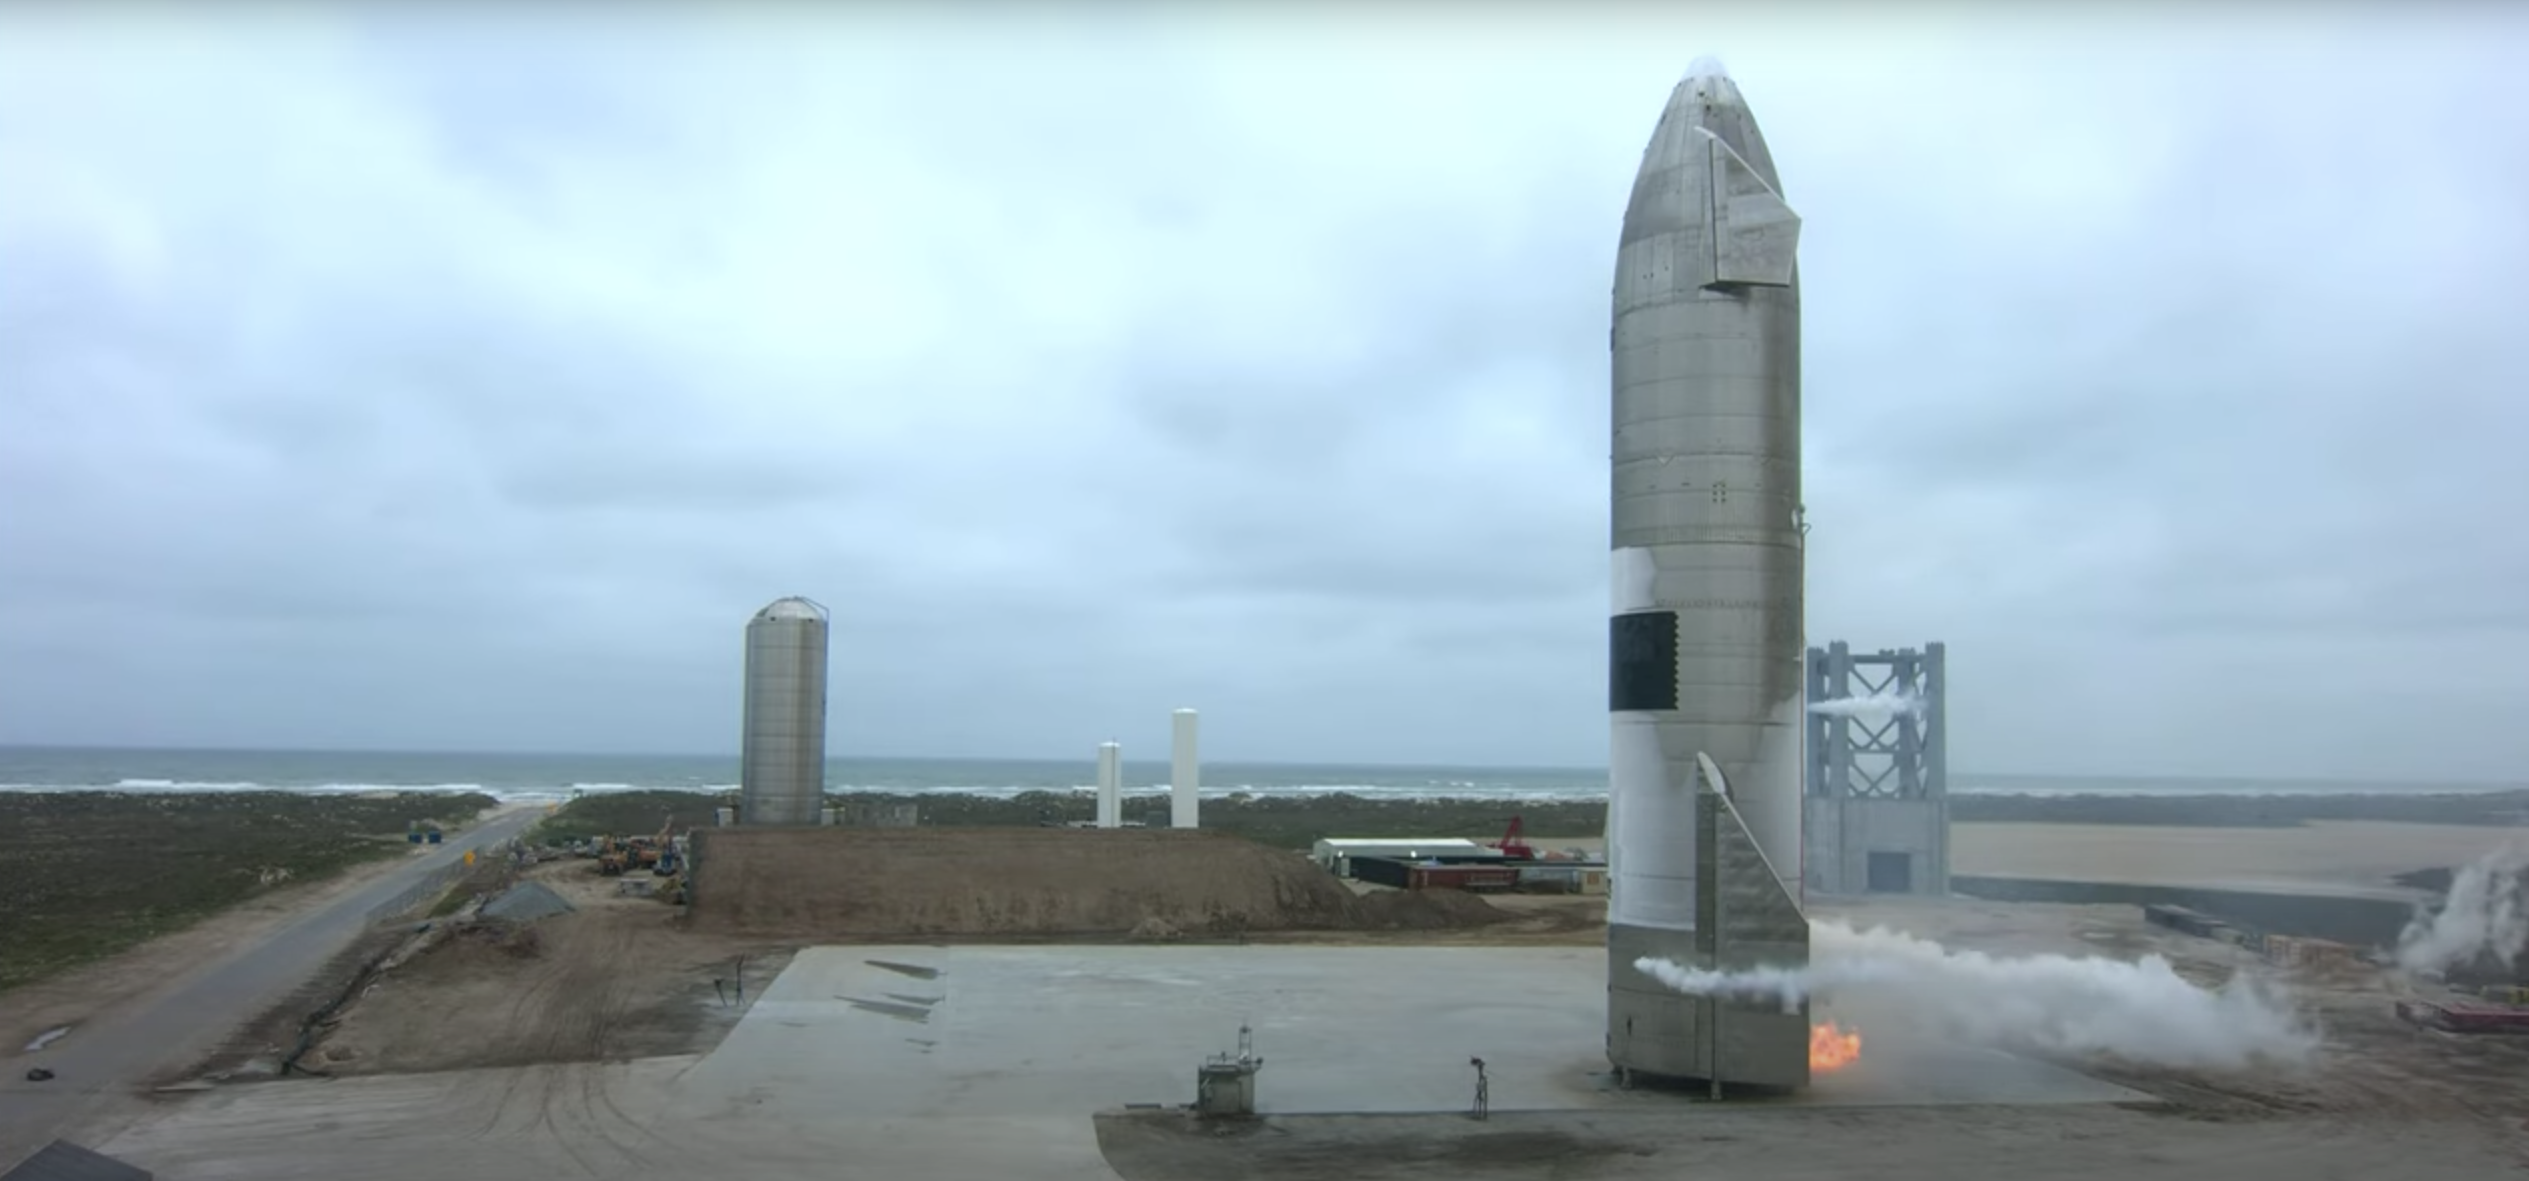 The Starship SN15 prototype, after landing safely on the pad